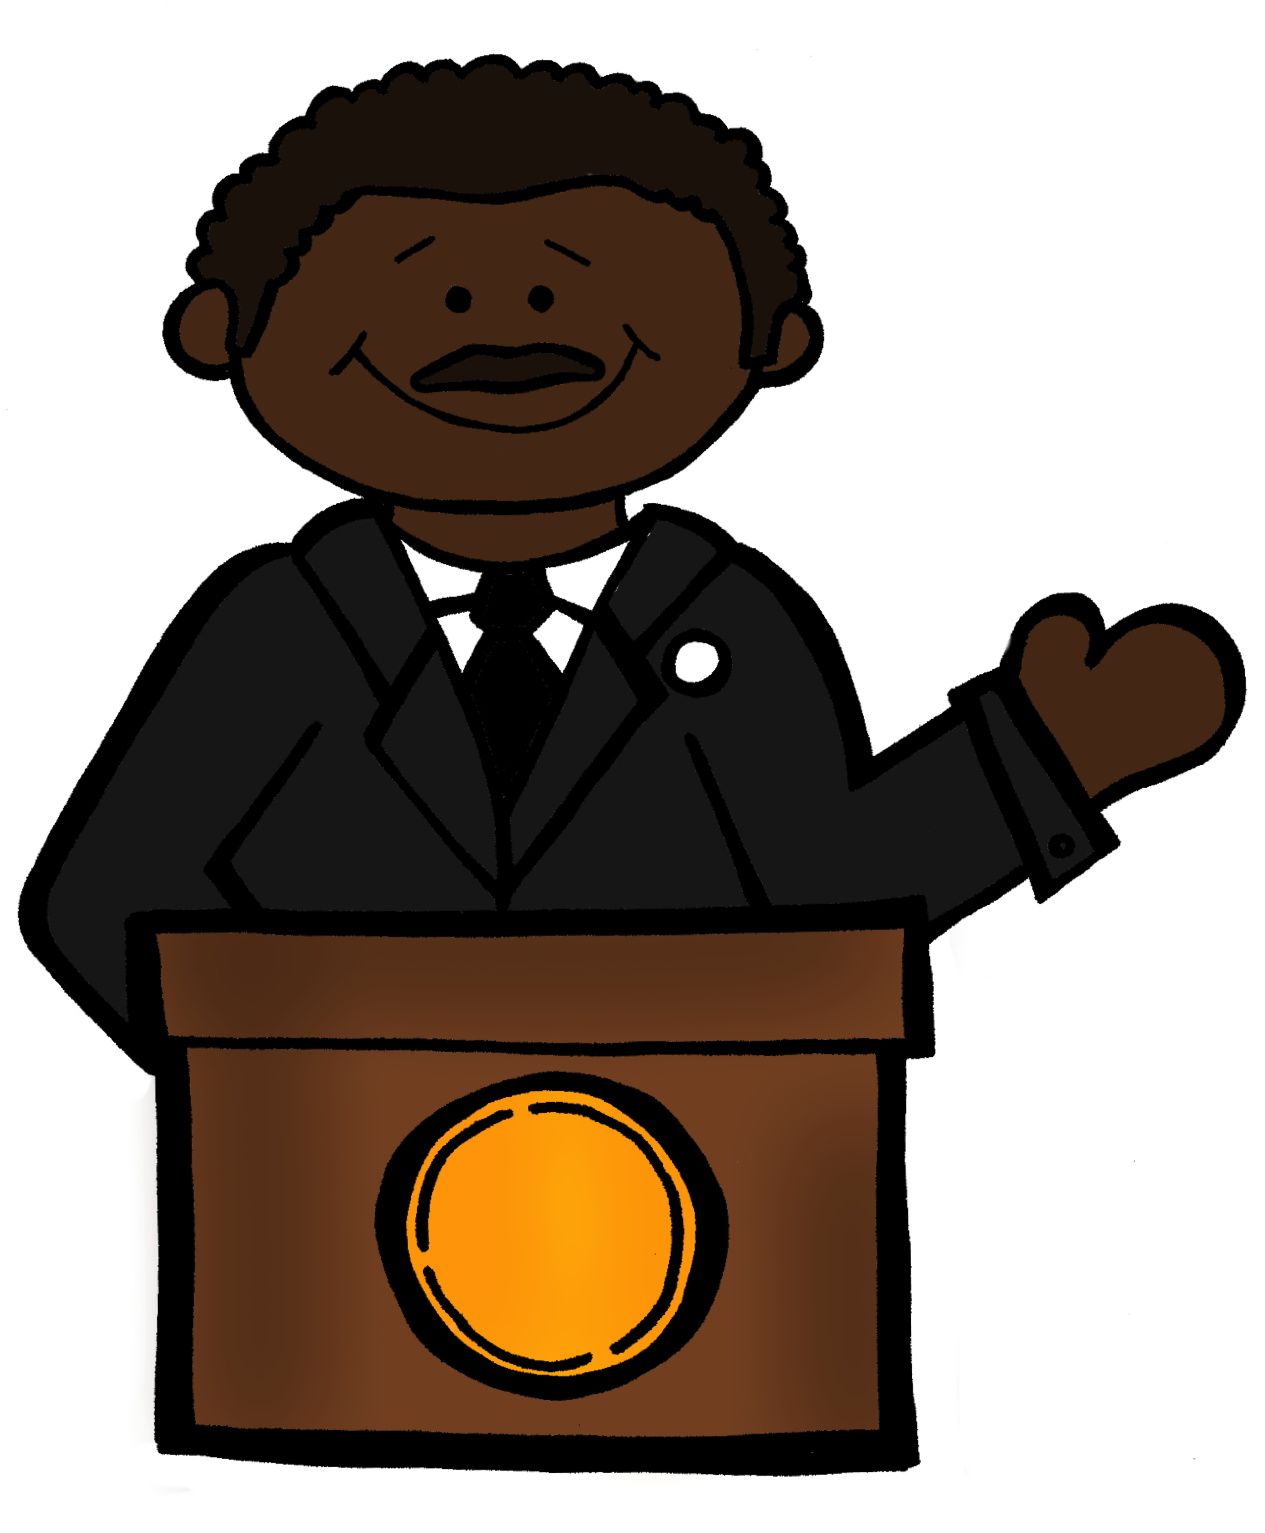 Free clipart martin.  luther king jr